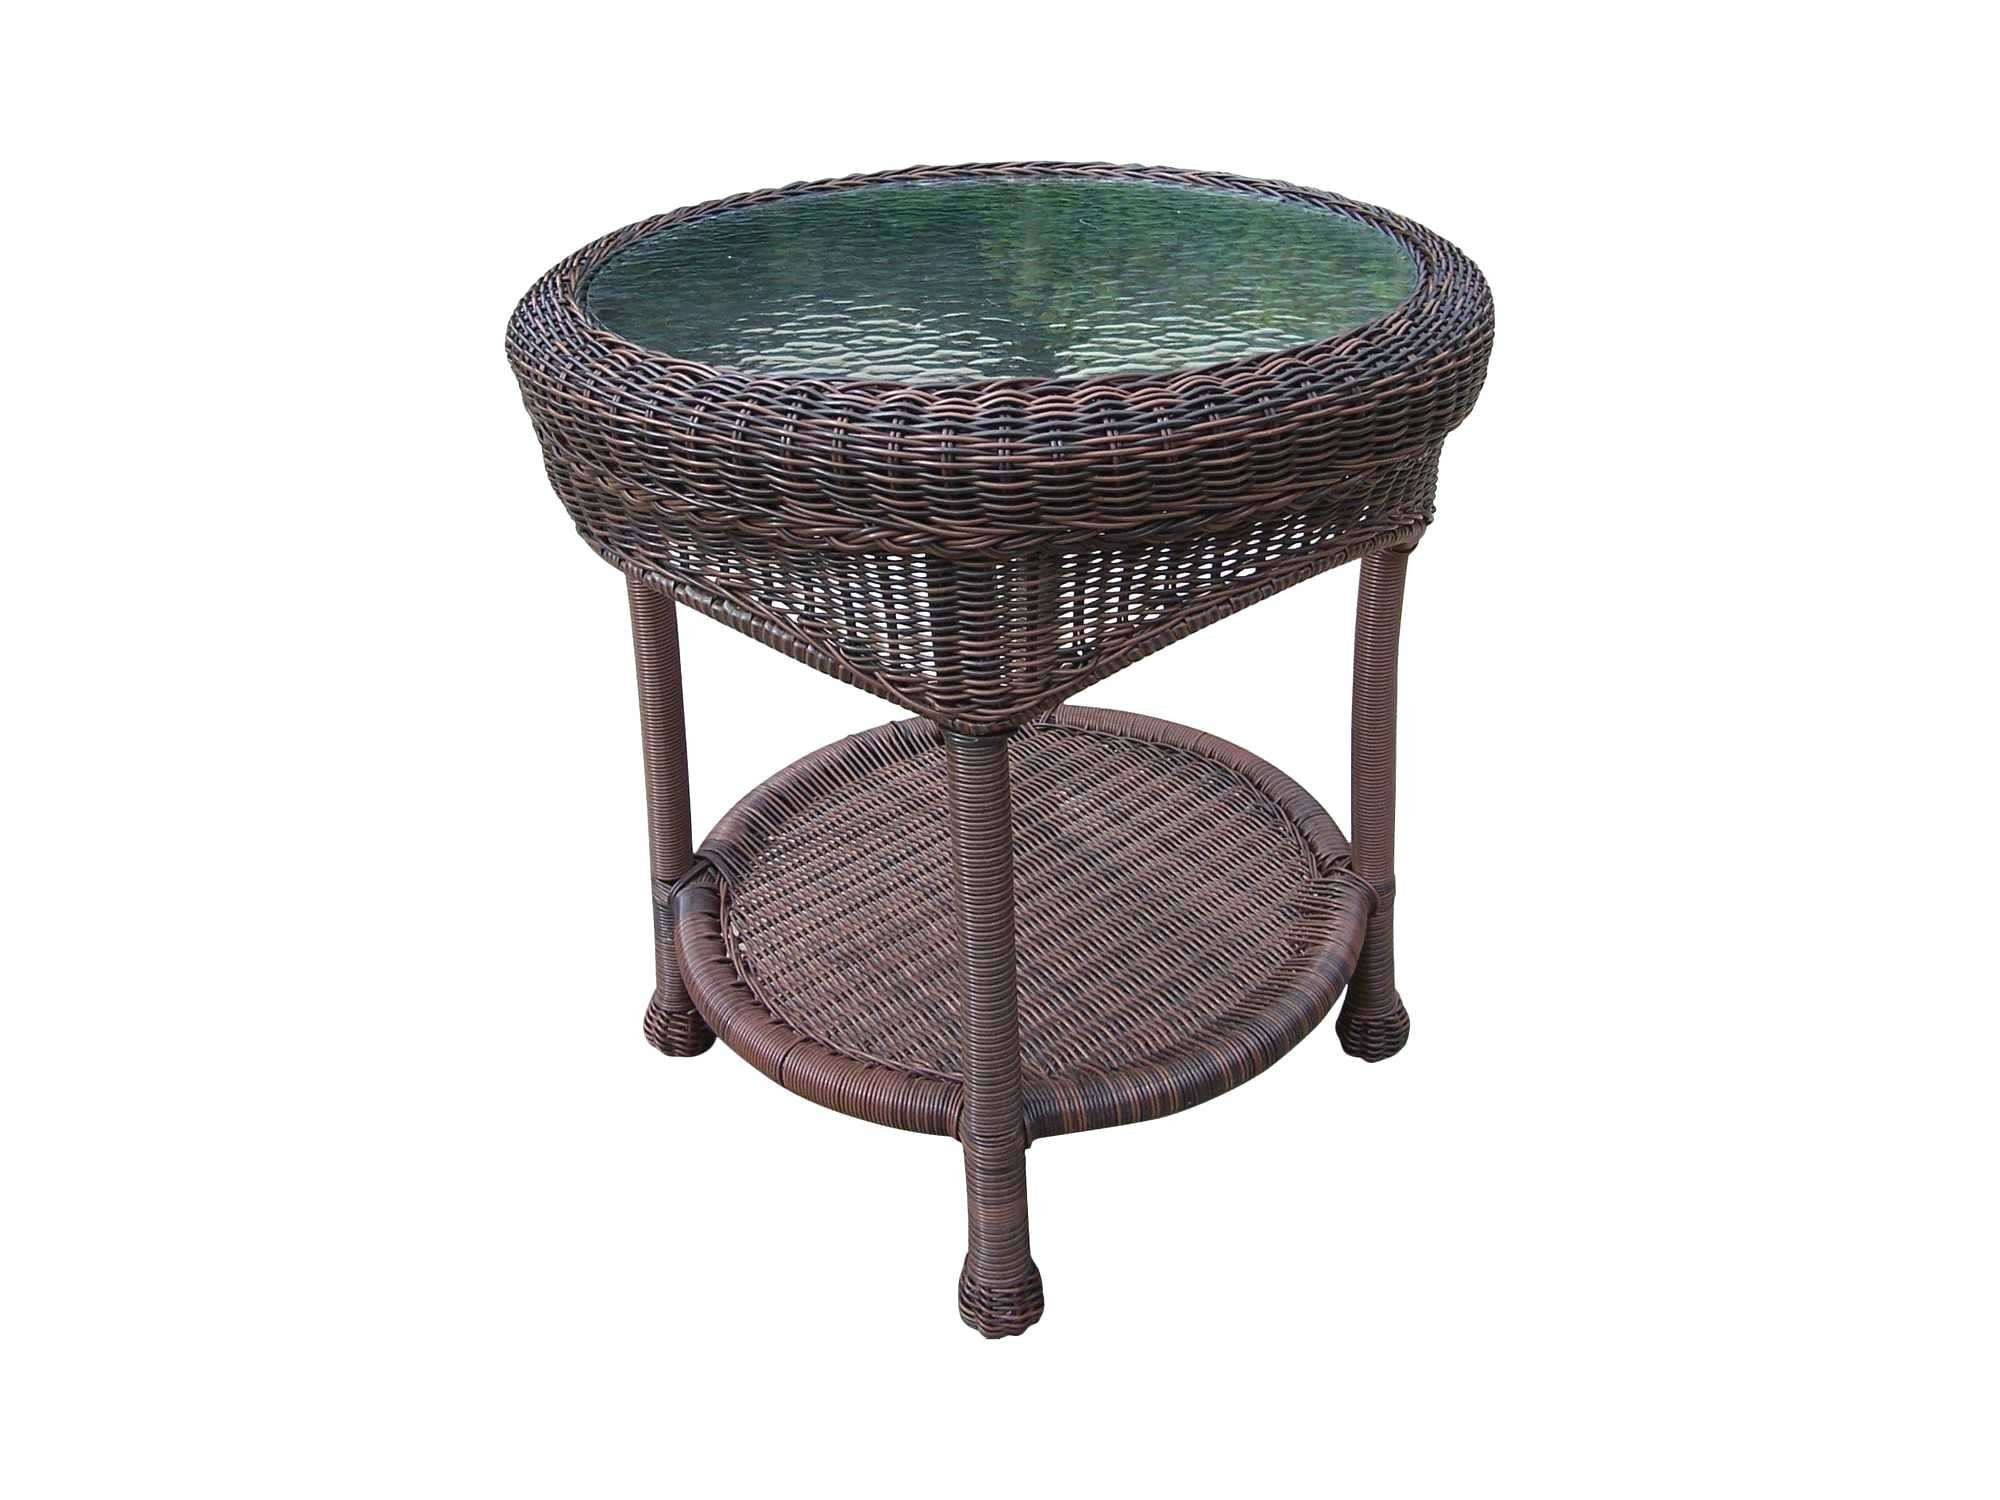 mosaic outdoor side table inspirational rania red round dining coffee with storage sets rustic wood and end tables hampton bay wicker patio furniture target recliners sofa for